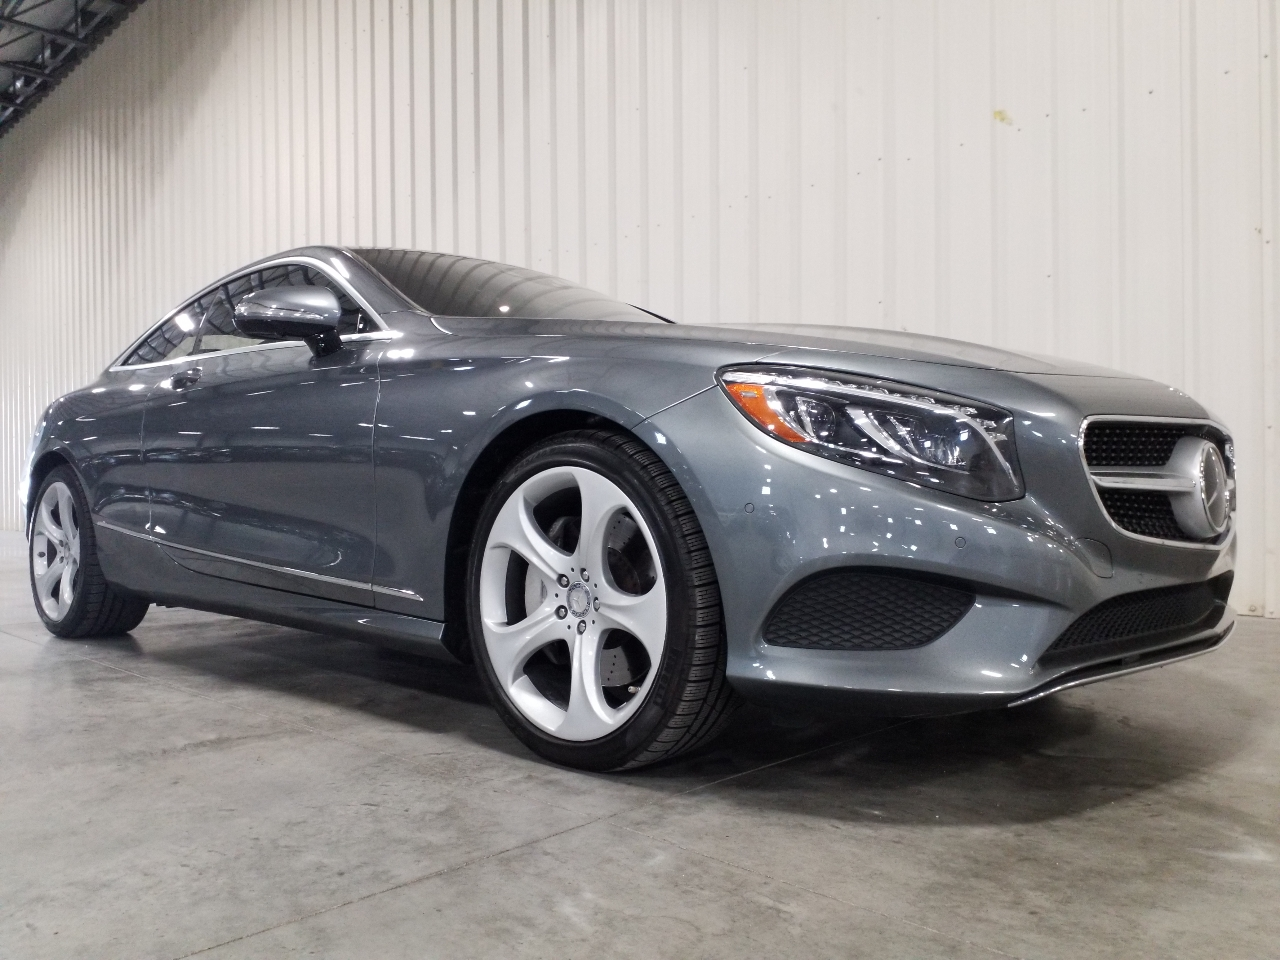 2016 Mercedes-Benz S-Class 2dr Cpe S 550 4MATIC